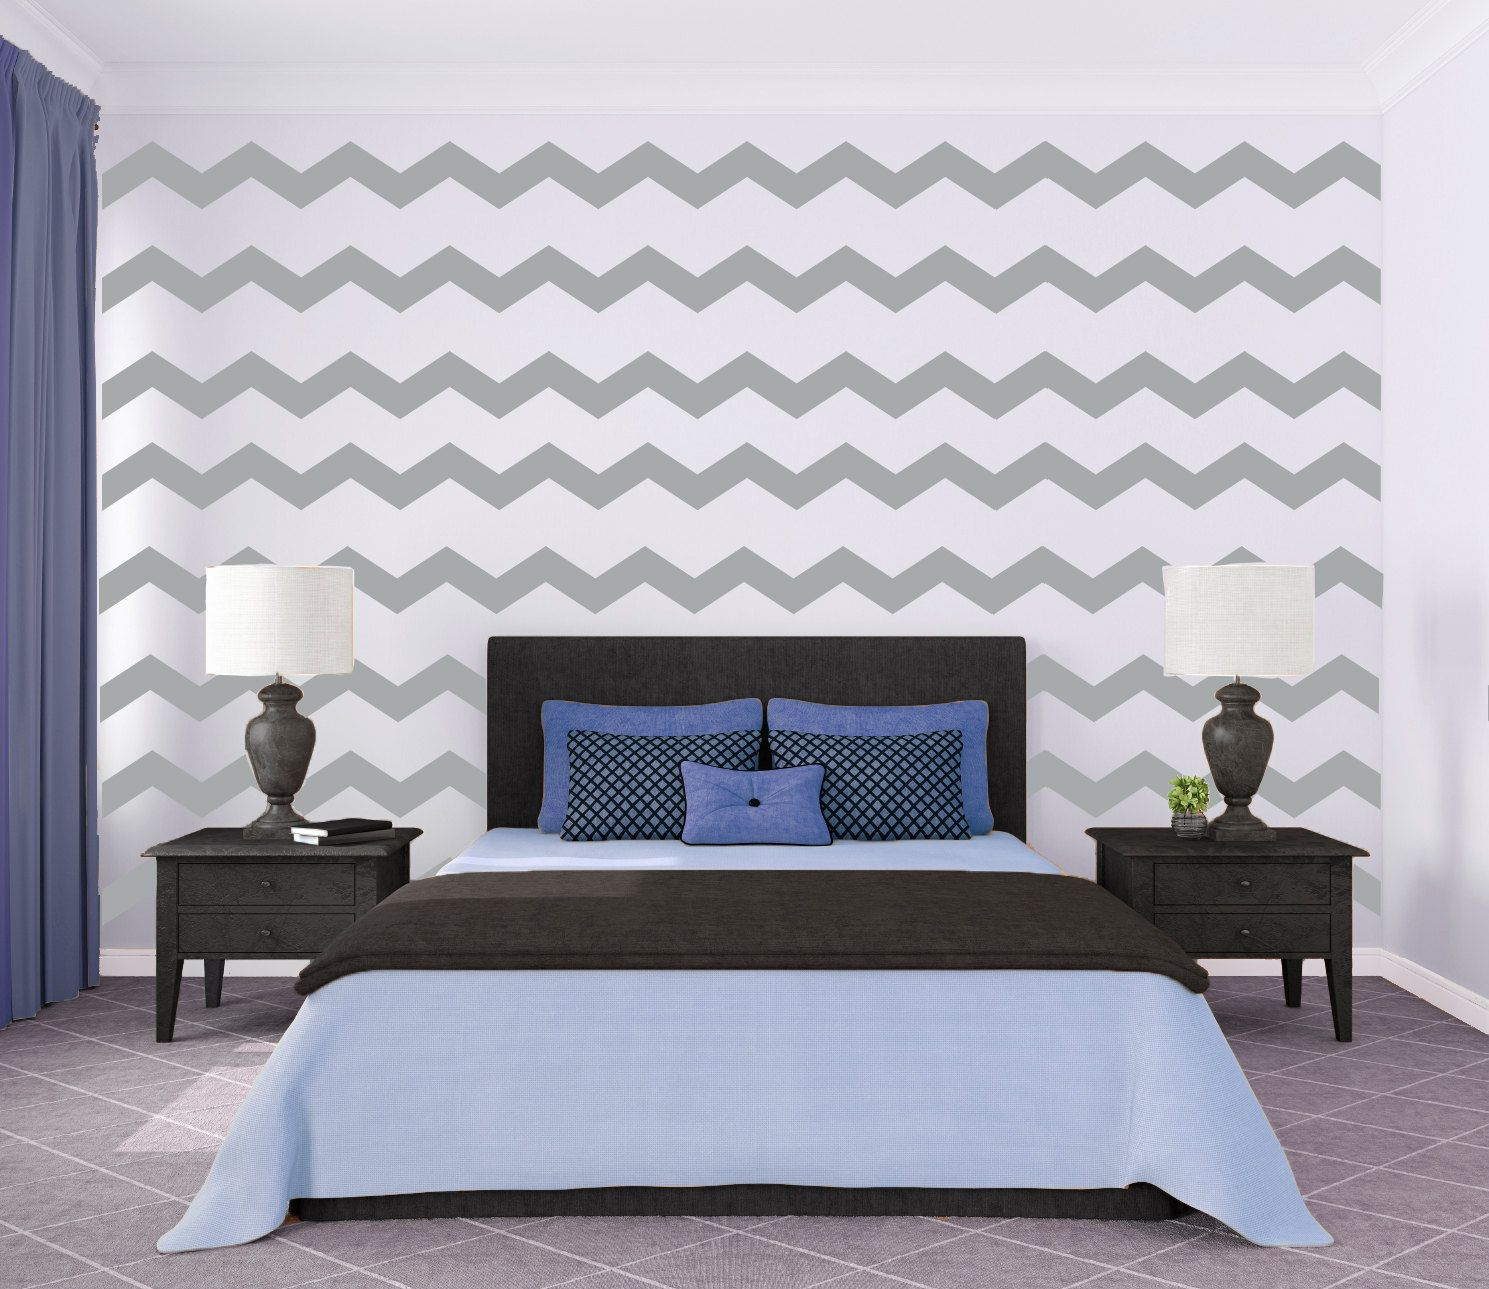 10+ images about wall decals on pinterest | removable wall, vinyls